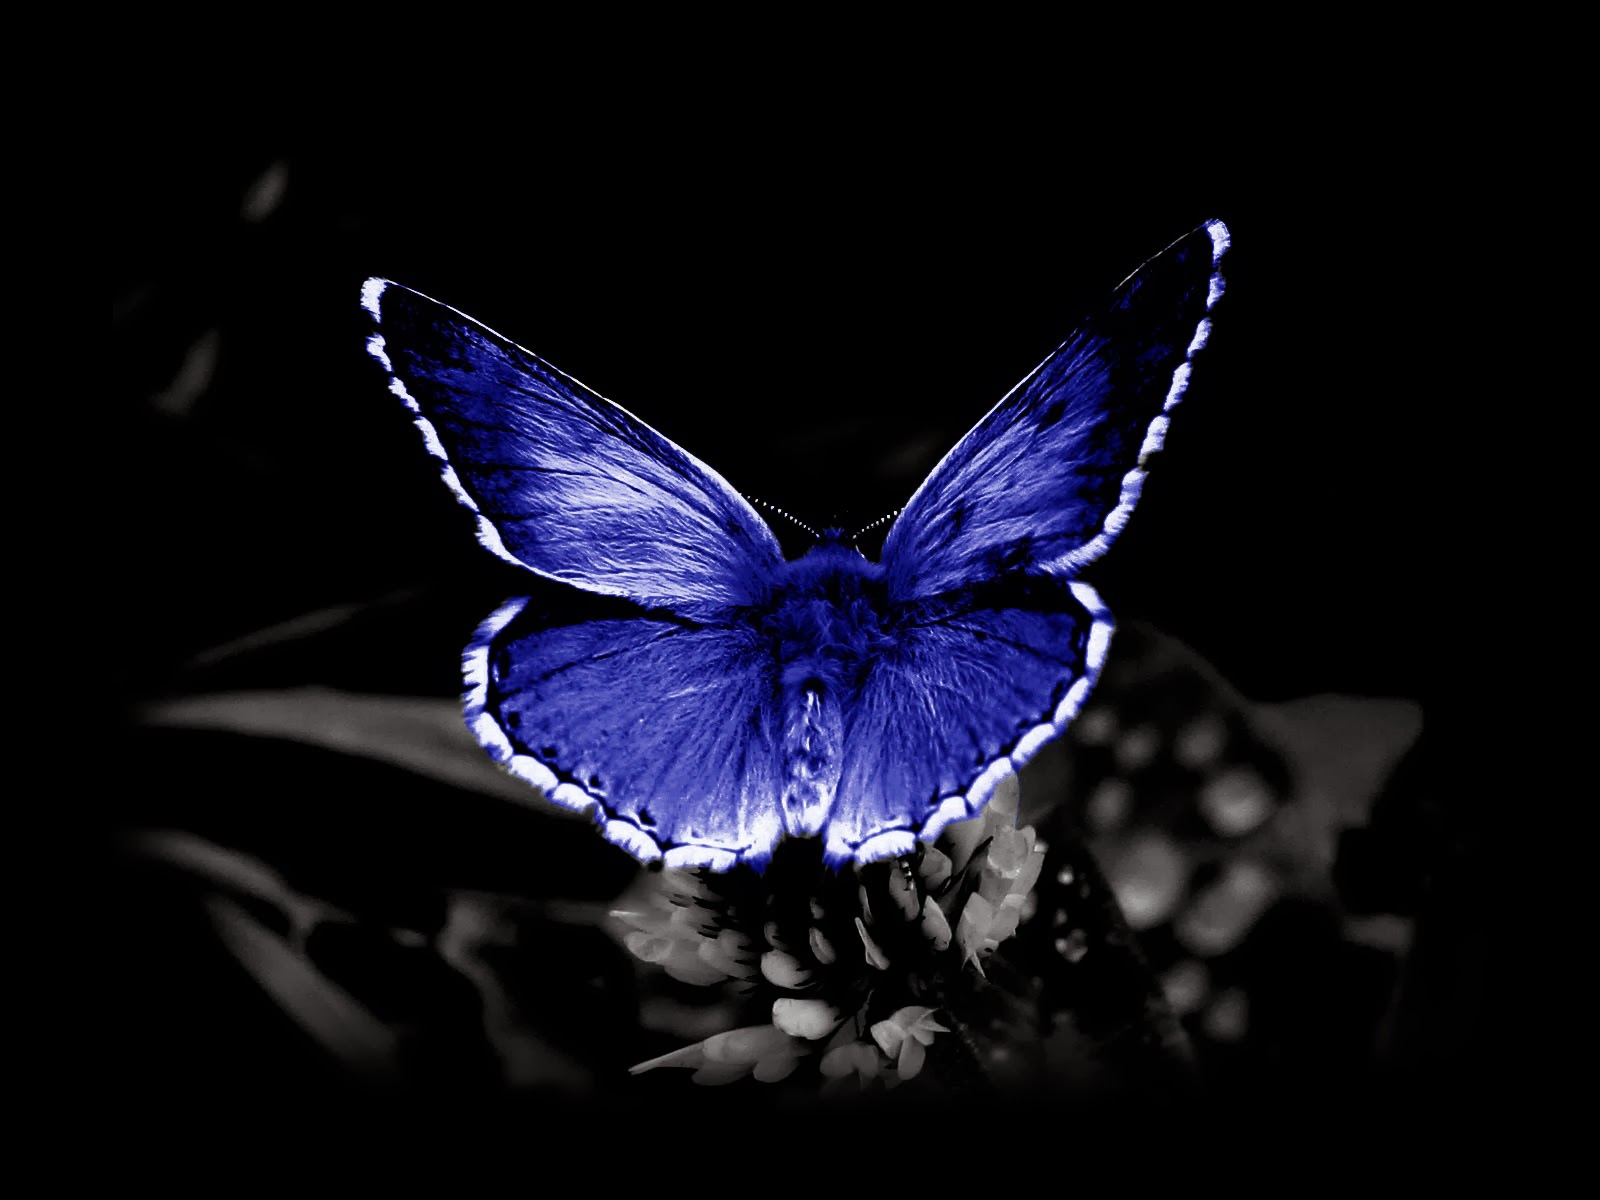 dark butterfly wallpaper desktop - photo #1